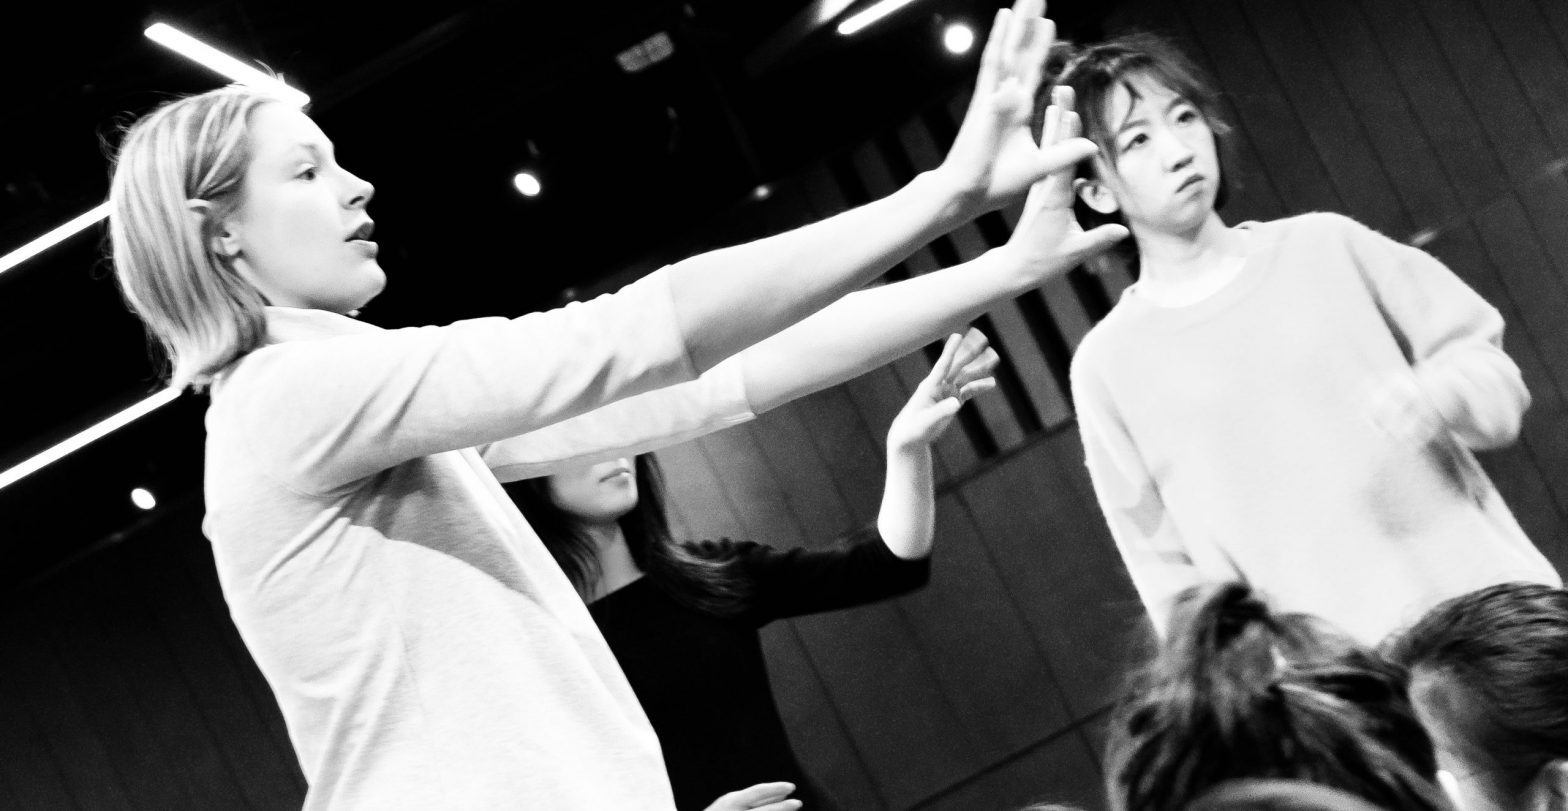 Angled photo of dancers discussing their routine in the studio